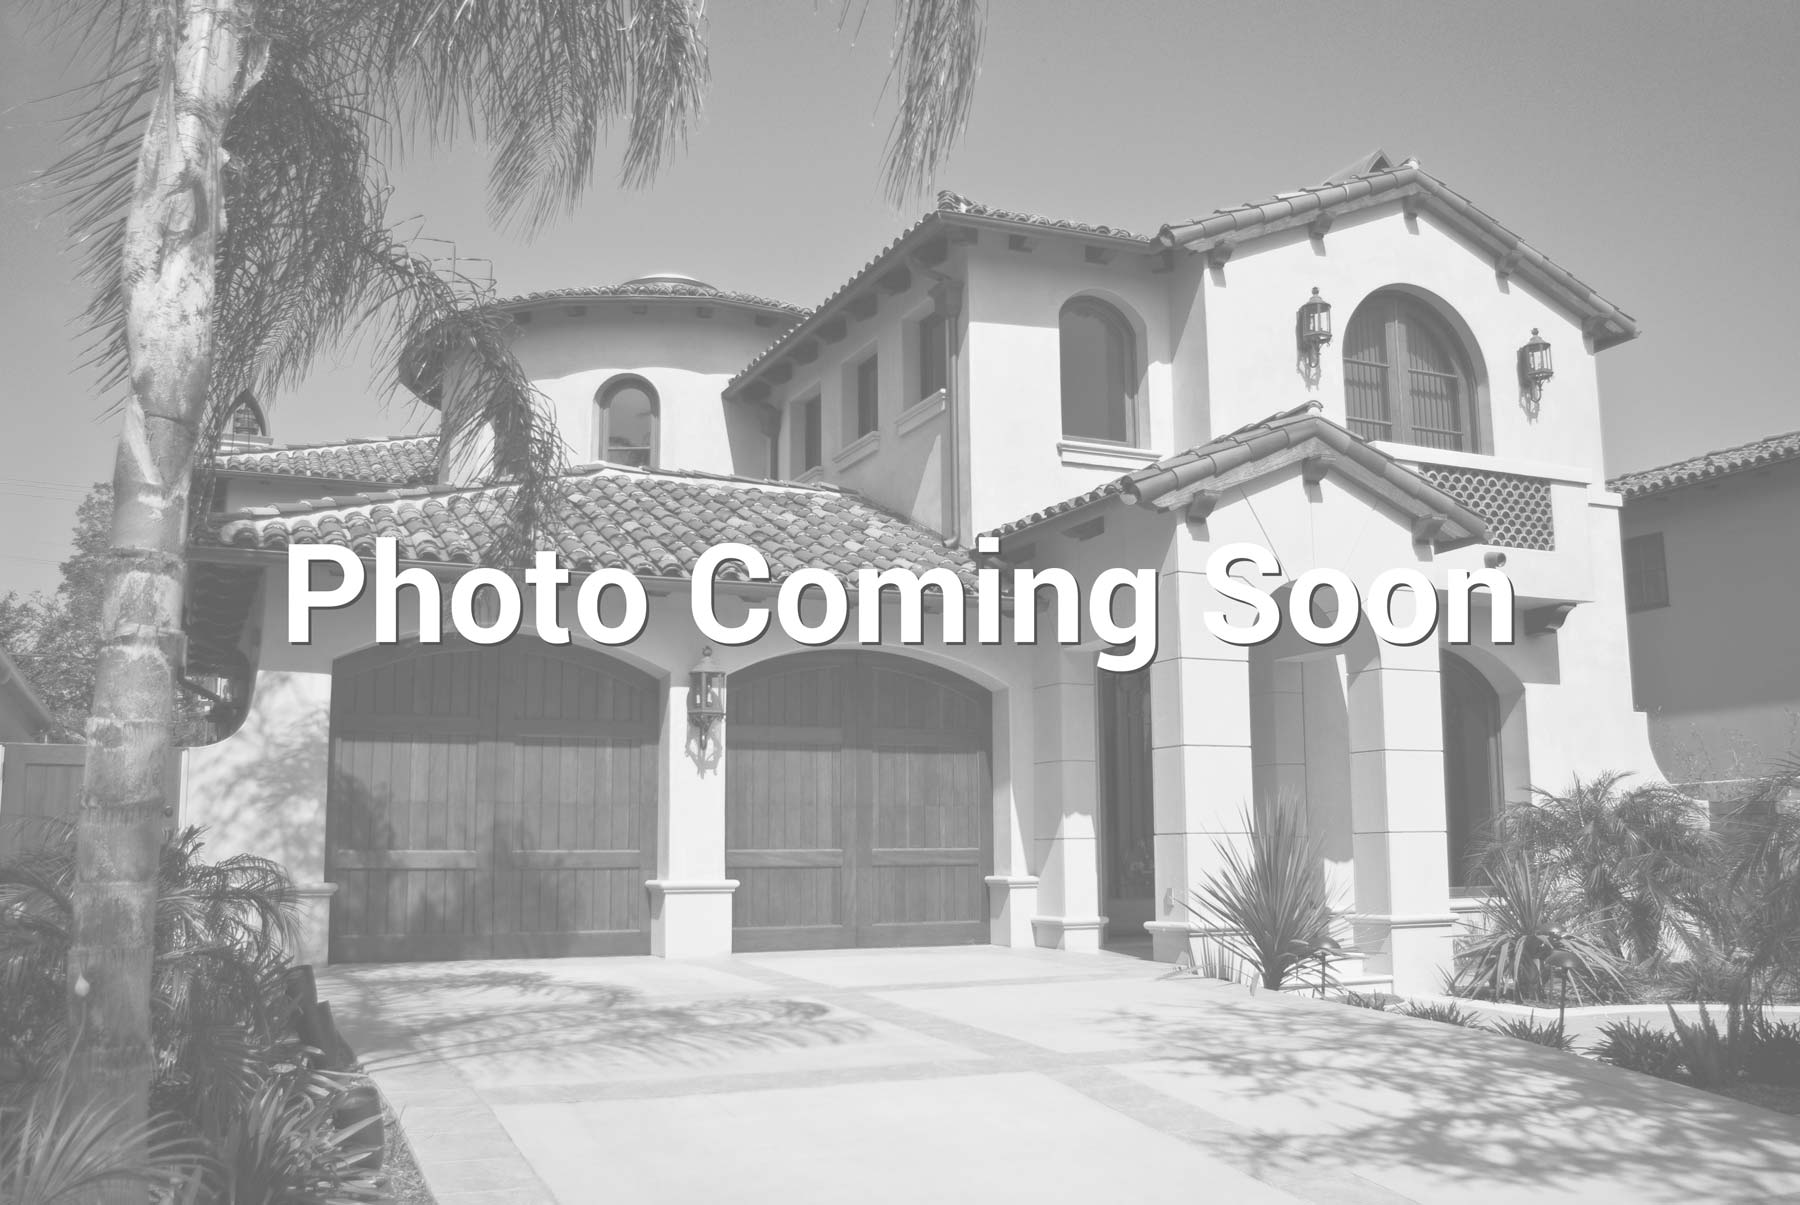 $189,900 - 3Br/2Ba -  for Sale in Pacific Park Mobile Est (ppm), San Clemente